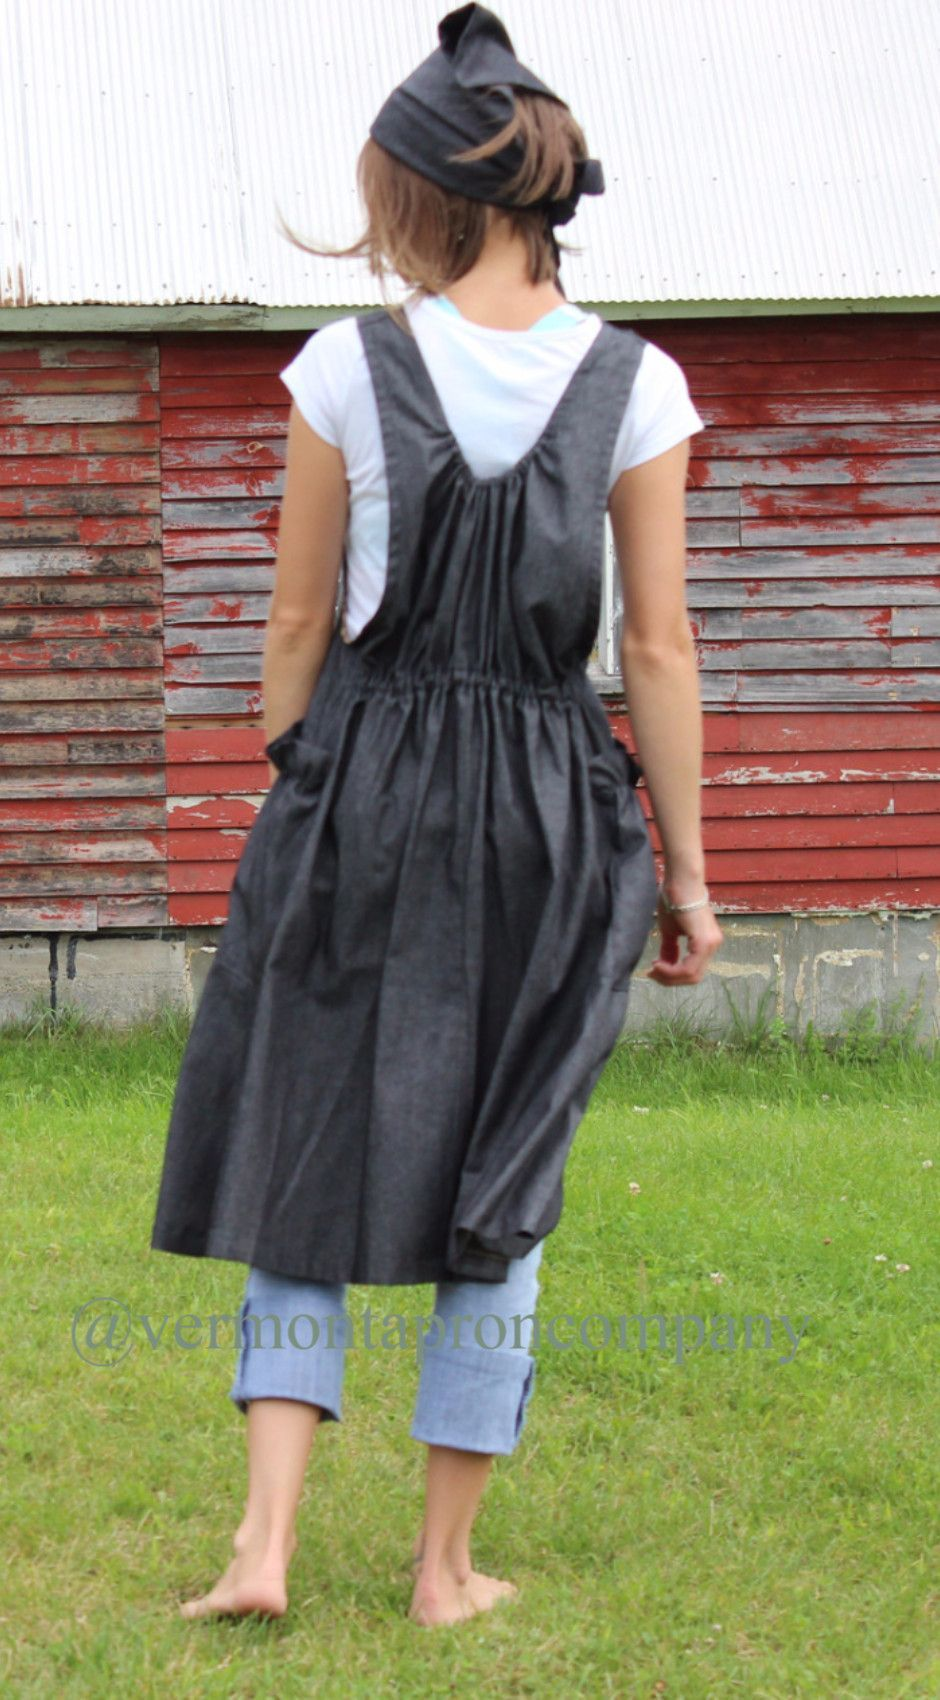 Similar To Our No Tie Aprons We Added A Softly Gathered Back The